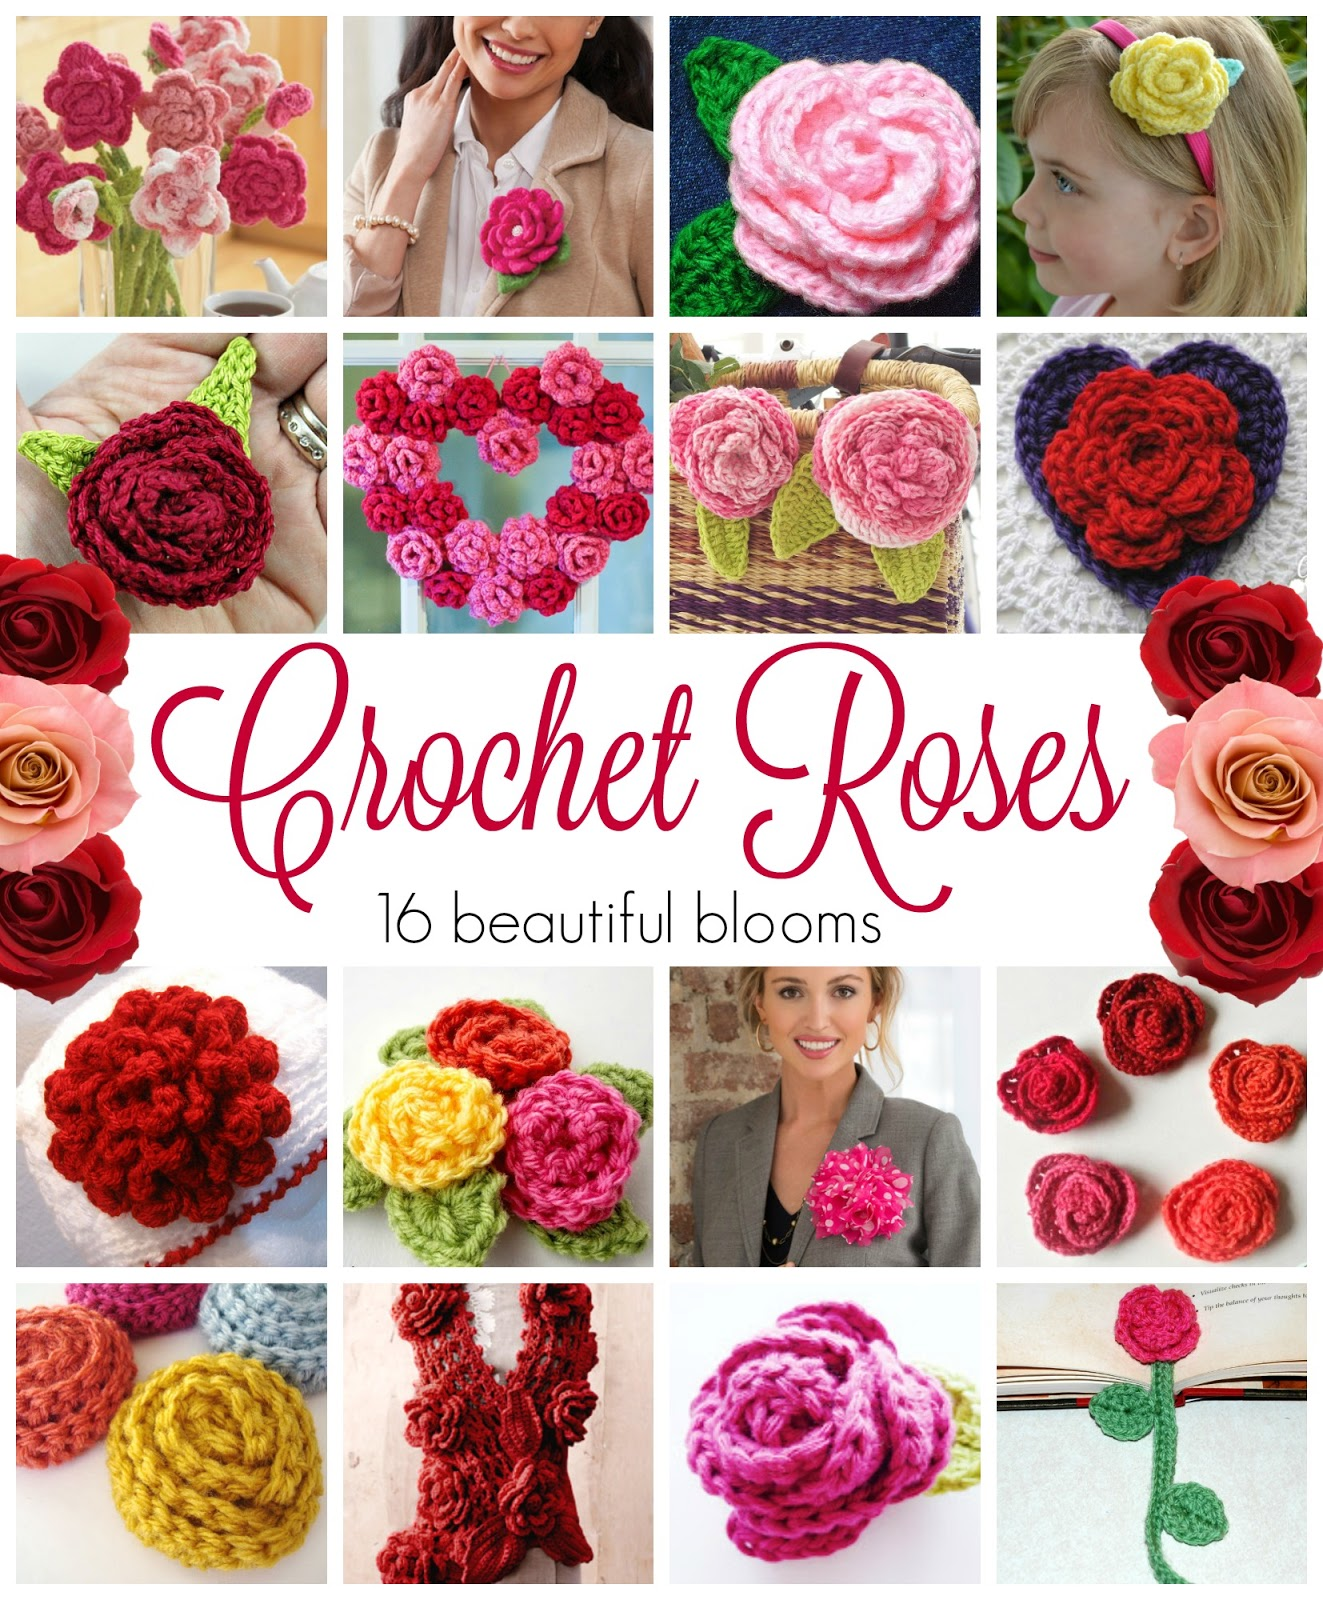 Crochet Patterns Of Roses : Fiber Flux: Crochet Roses! 16 Free Crochet Patterns...